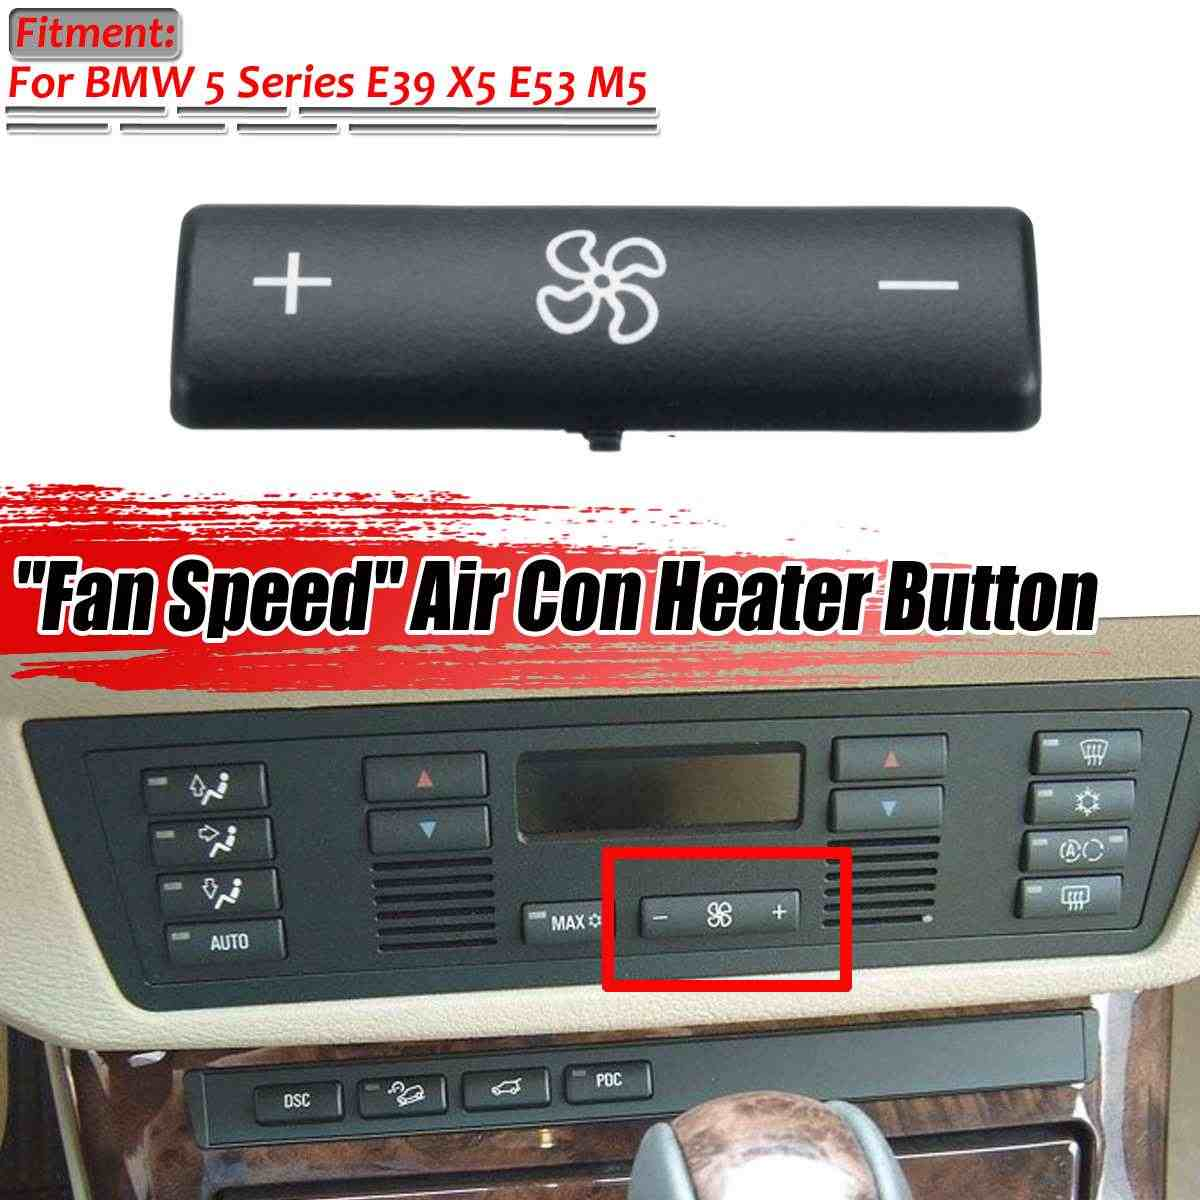 ESC EDP88-5FBA 2 Pieces Heater Climate Control Air Conditioning Switch Button Cover #5 For BMW 5 Series